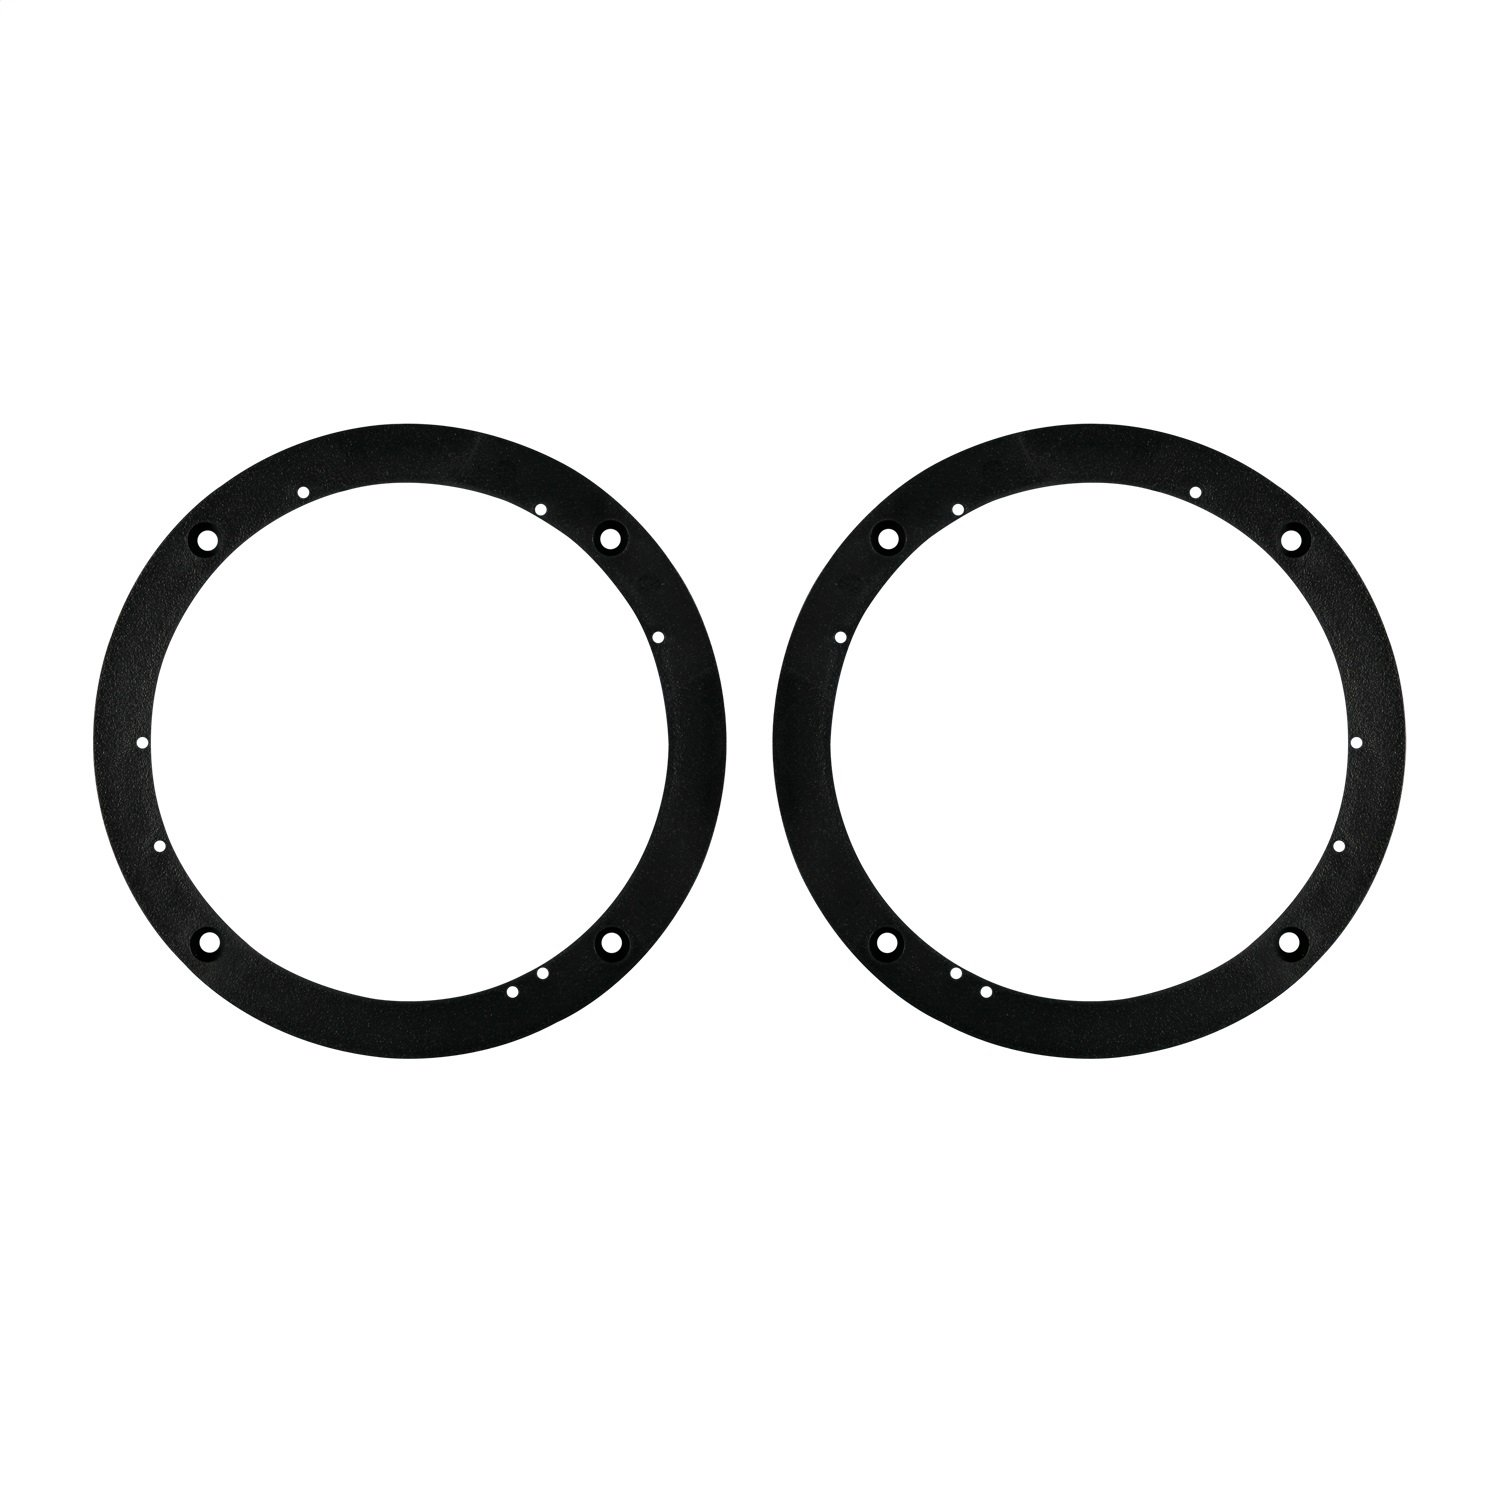 Metra 82-4400 Universal 1//2-Inch Plastic Spacer Rings for 5 1//4-Inch Speakers